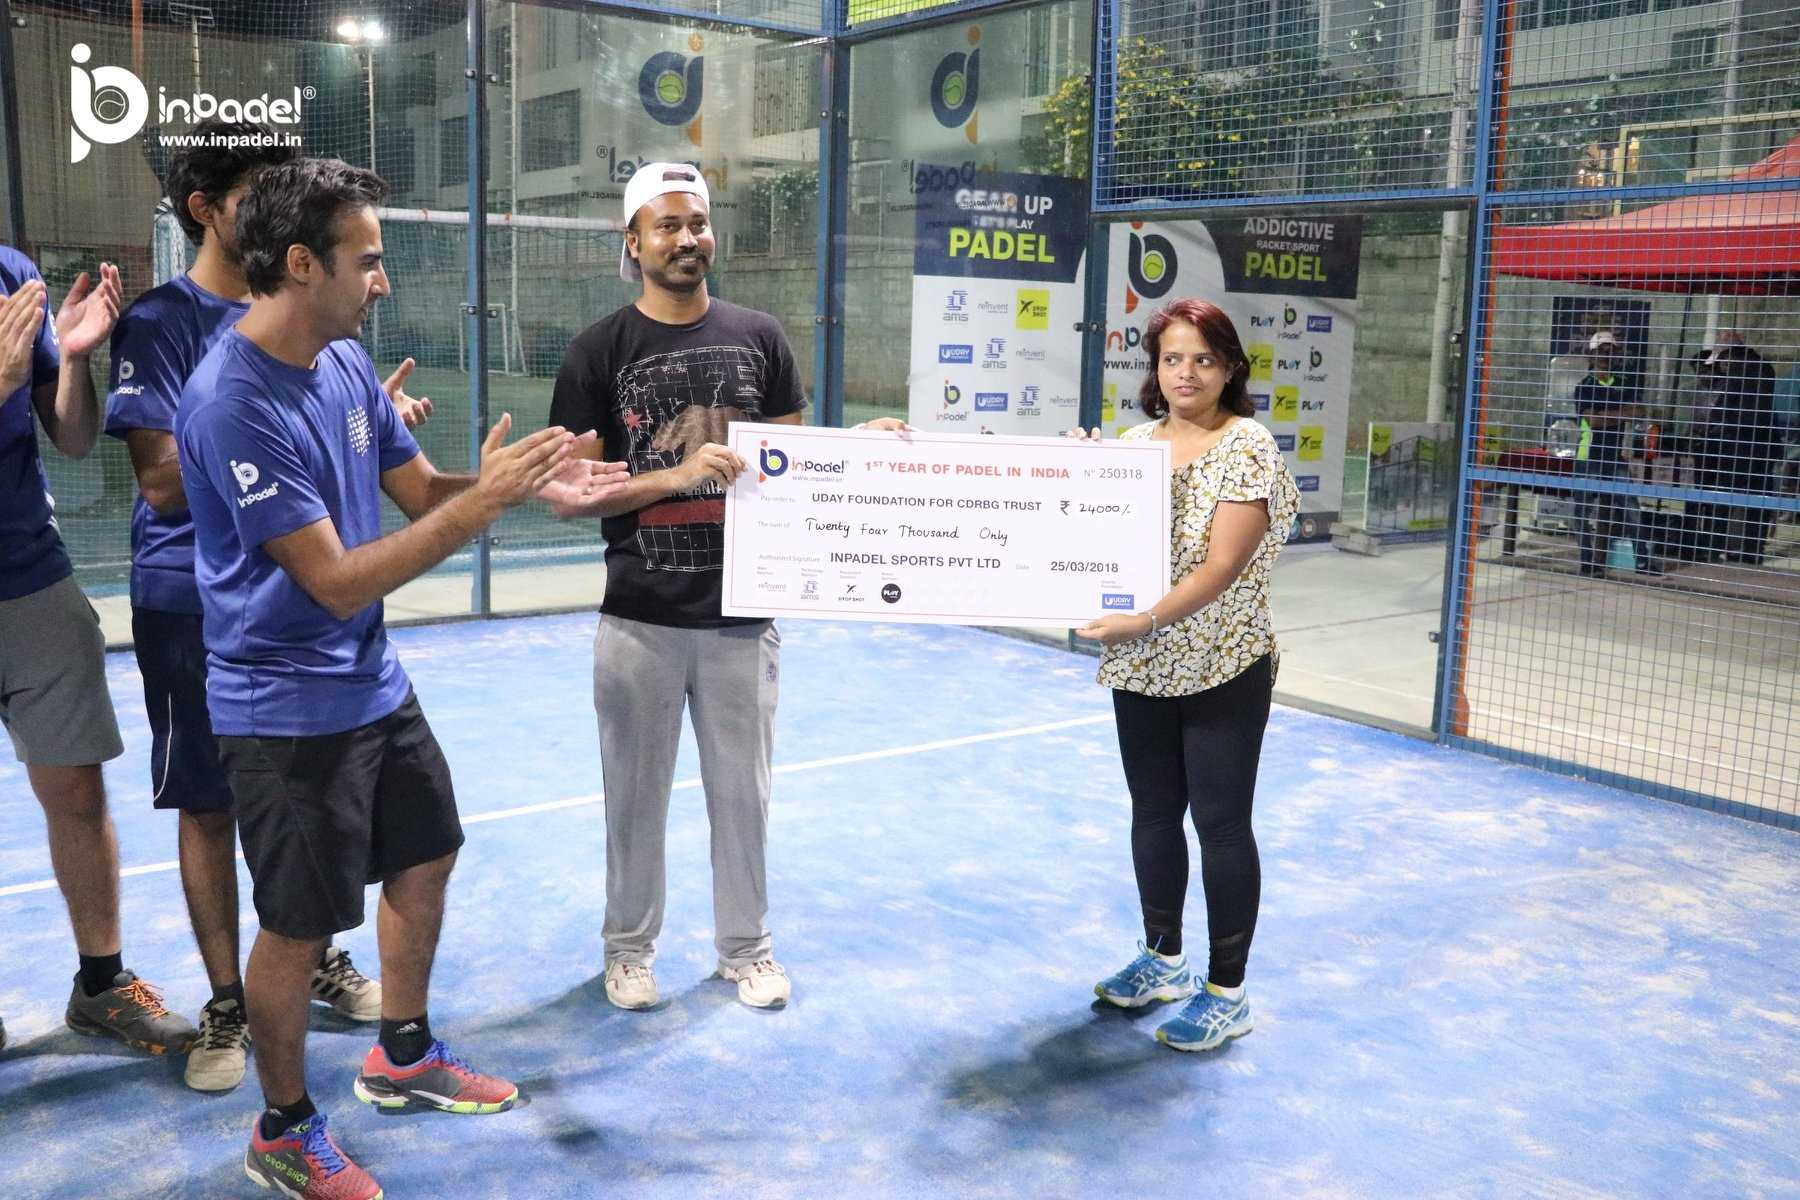 InPadel 1Yr Celebration of Padel in INDIA - Padel - Padel India (125)